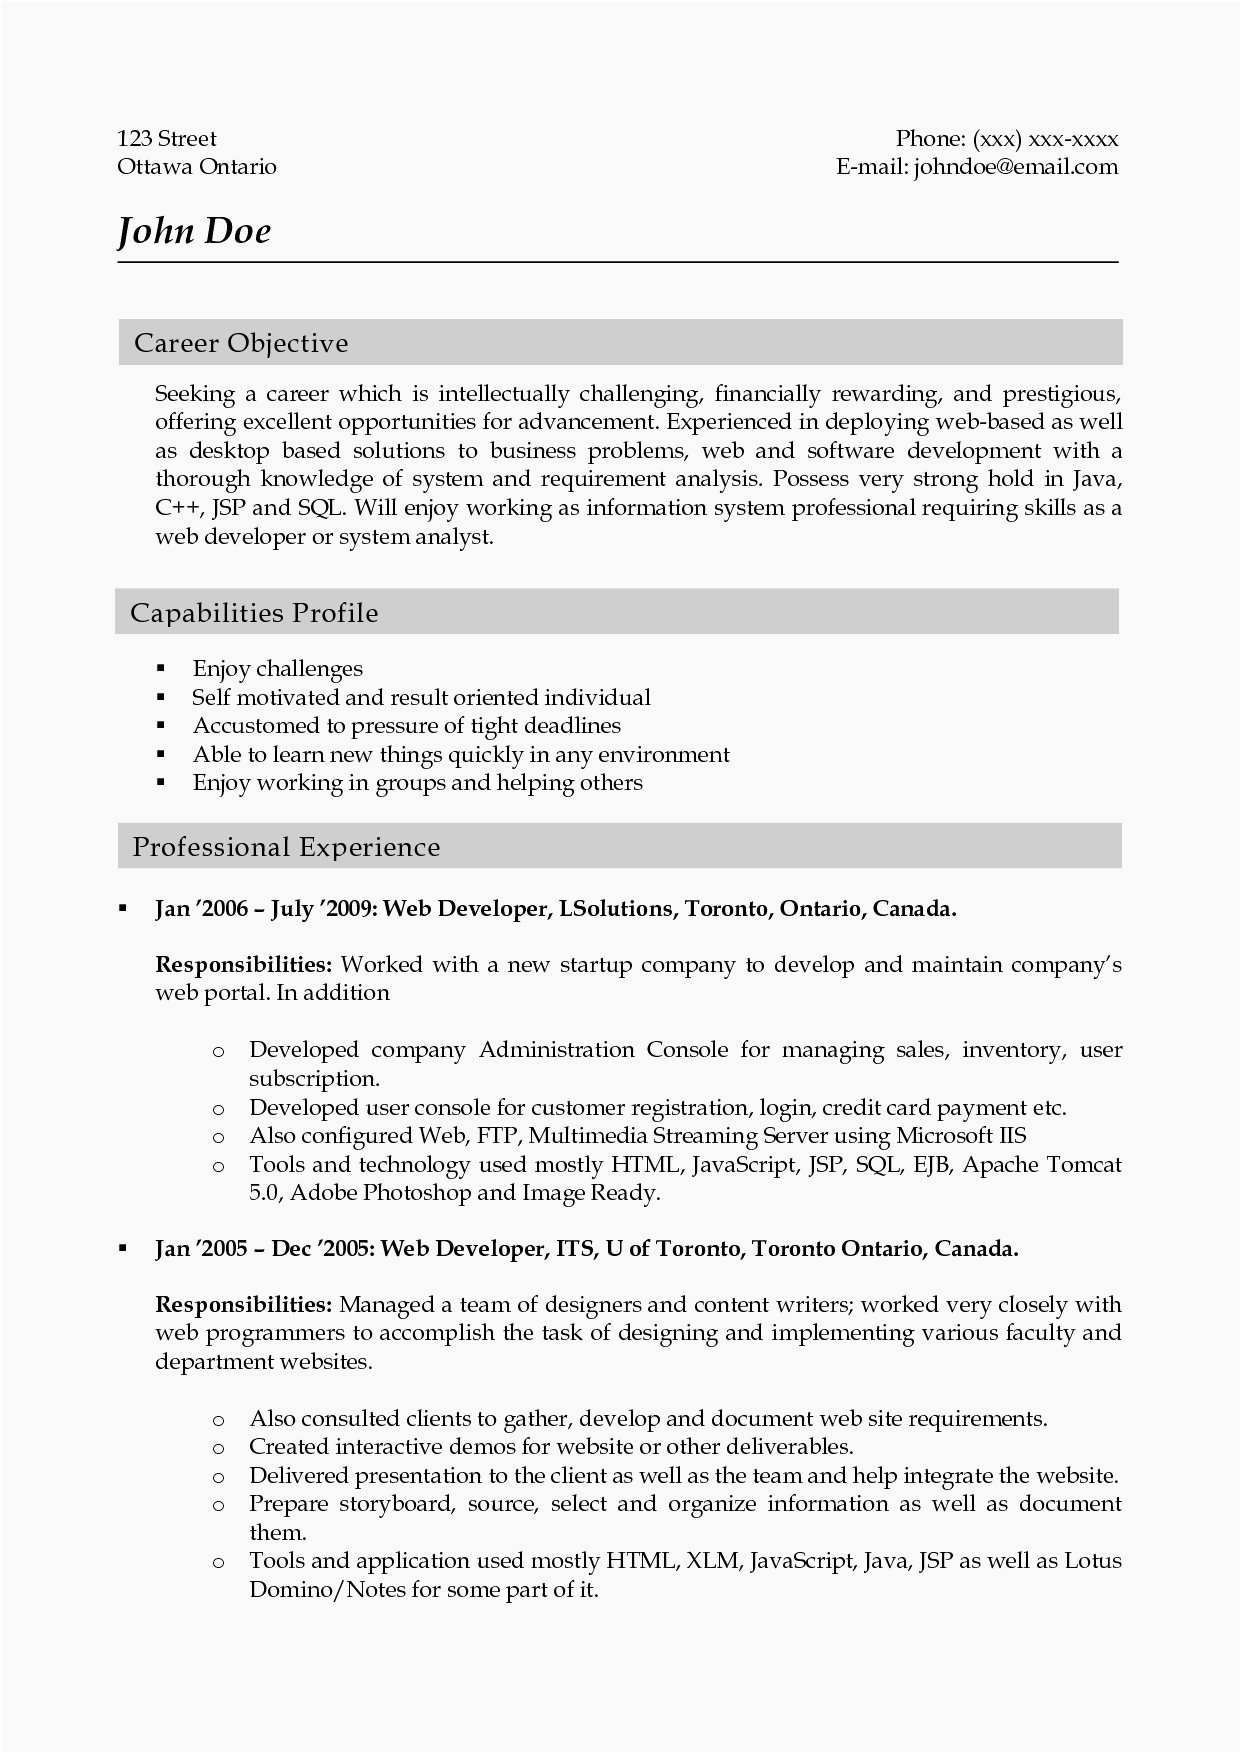 Career Goals Statement Examples Resume Objective Examples